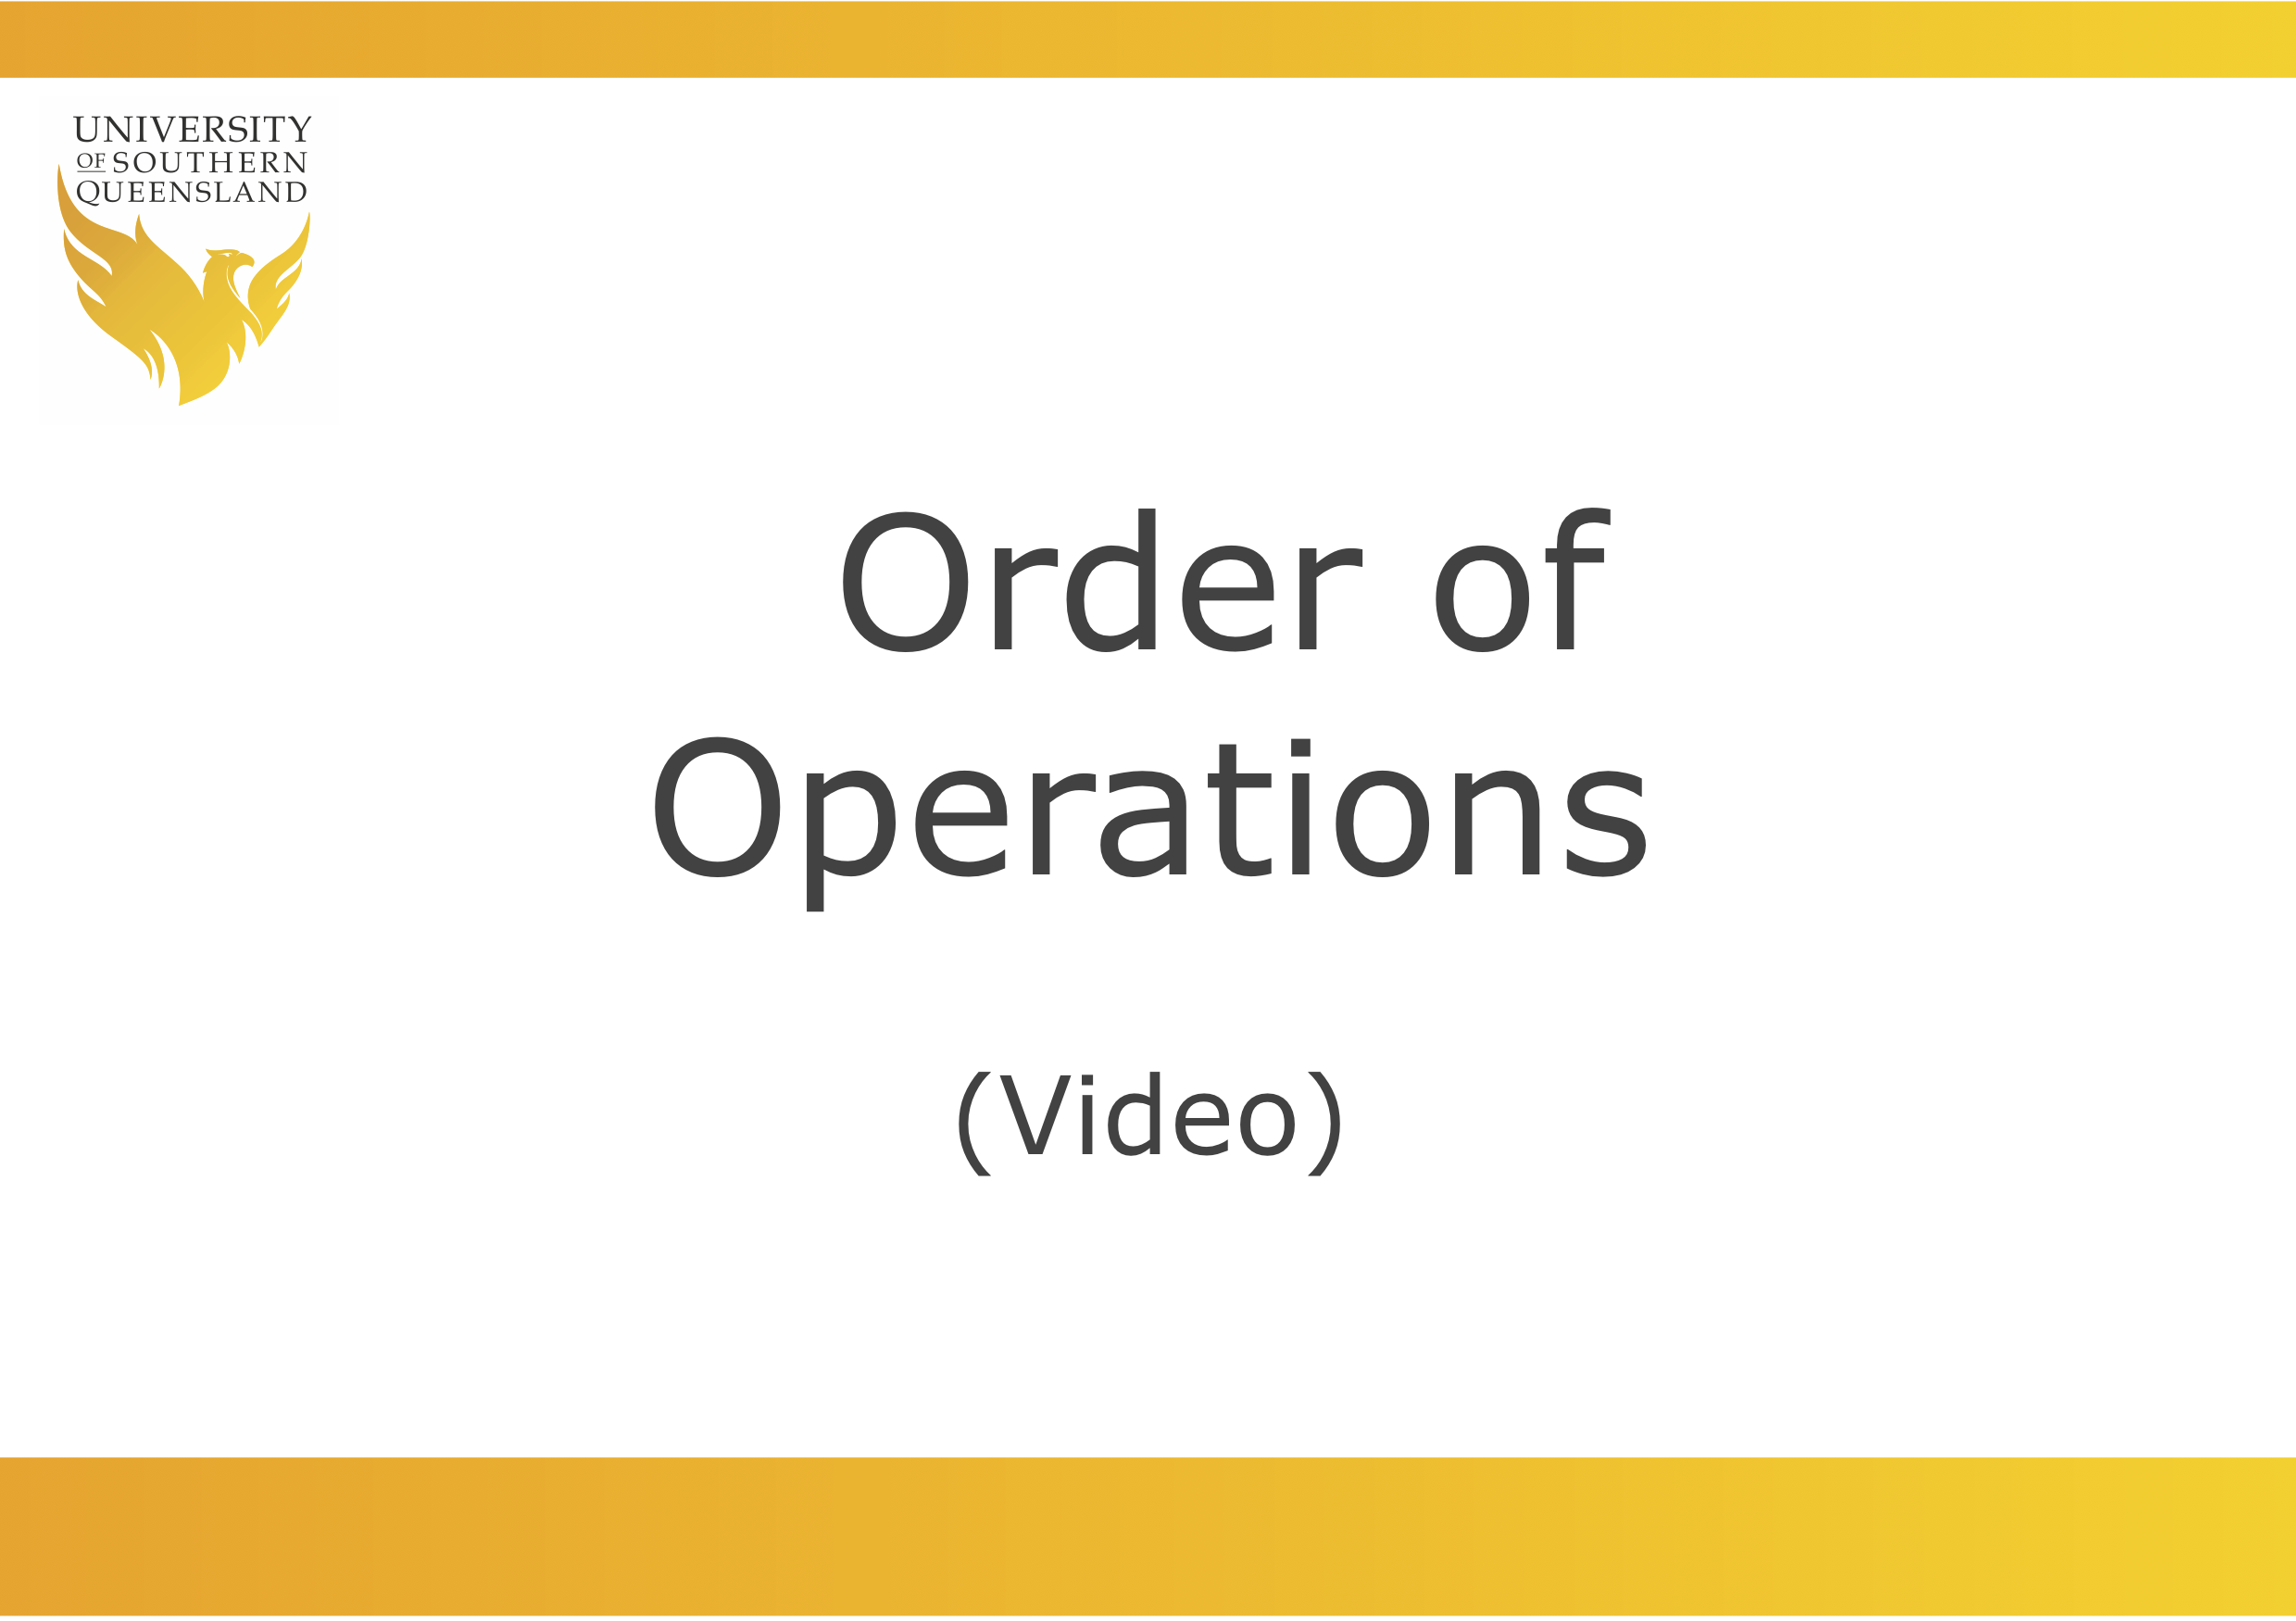 Order of operations link to video